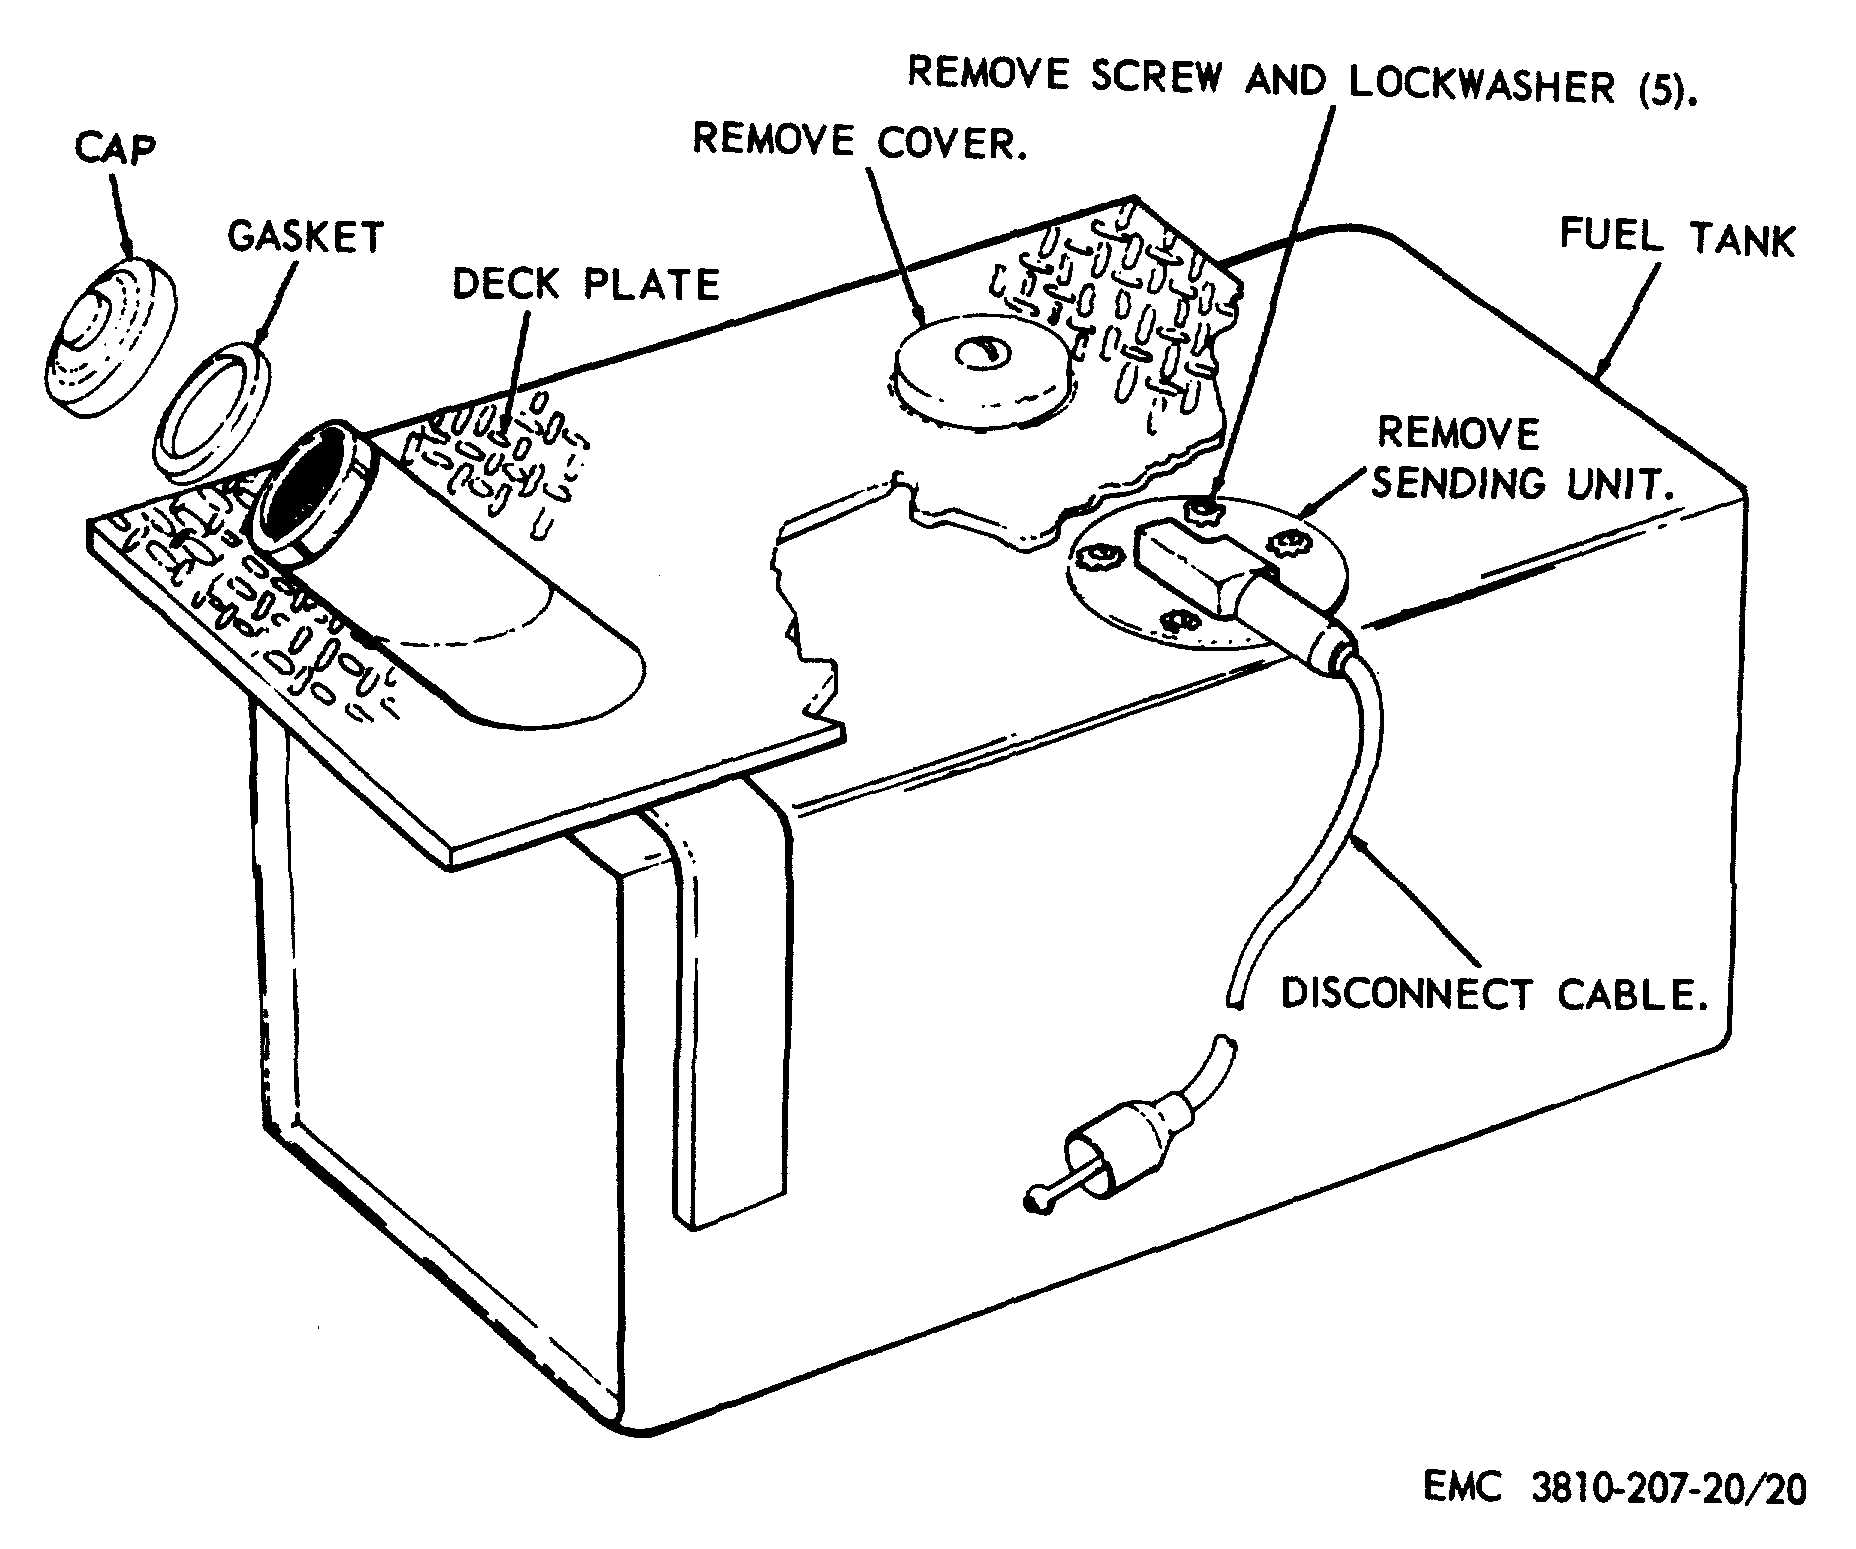 Figure 20. Fuel tank sending unit, removal and installation.